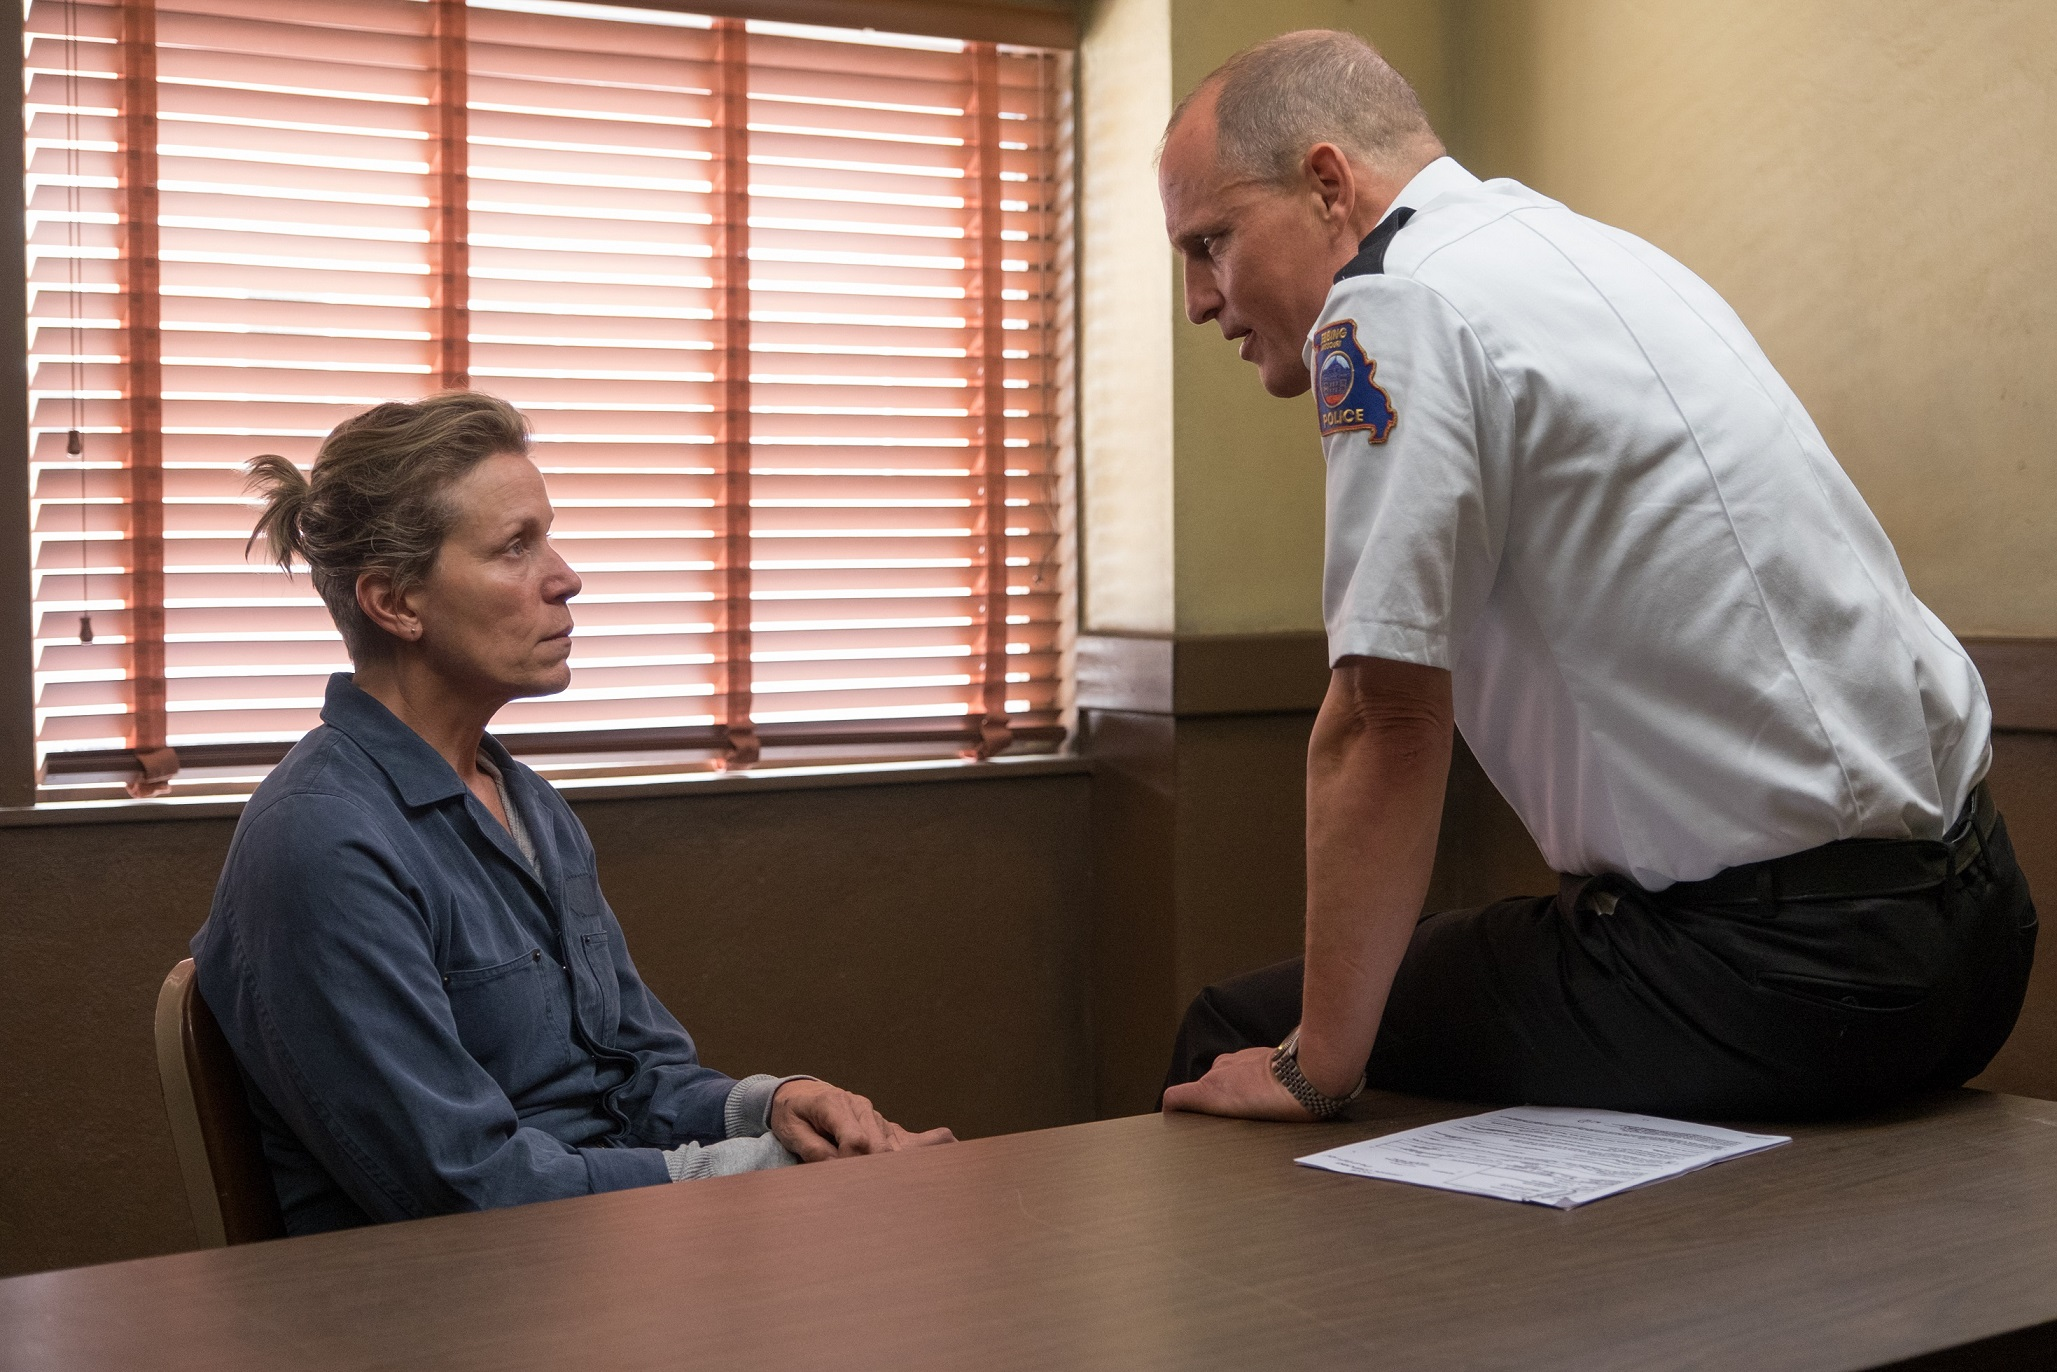 ONE-ON-ONE TALK. Frances McDormand and Woody Harrelson in a confrontation scene for 'Three Billboards Outside Ebbing, Missouri.'